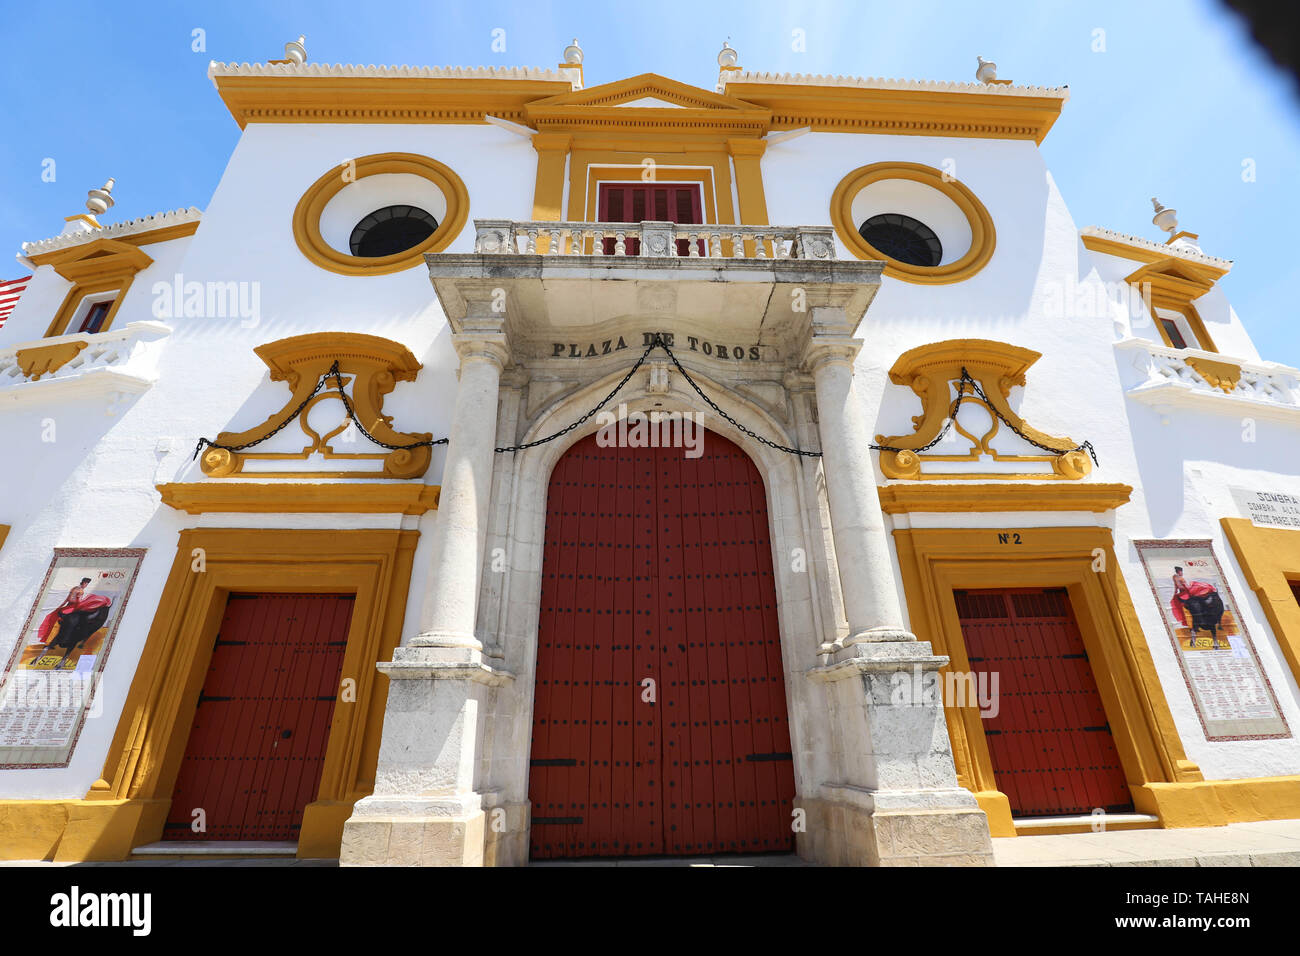 Seville, Spain - May 01 , 2019 : Bullfight arena, facade of Bullring in Seville, Real Maestranza de Caballeria de Sevilla, Spain - Stock Image